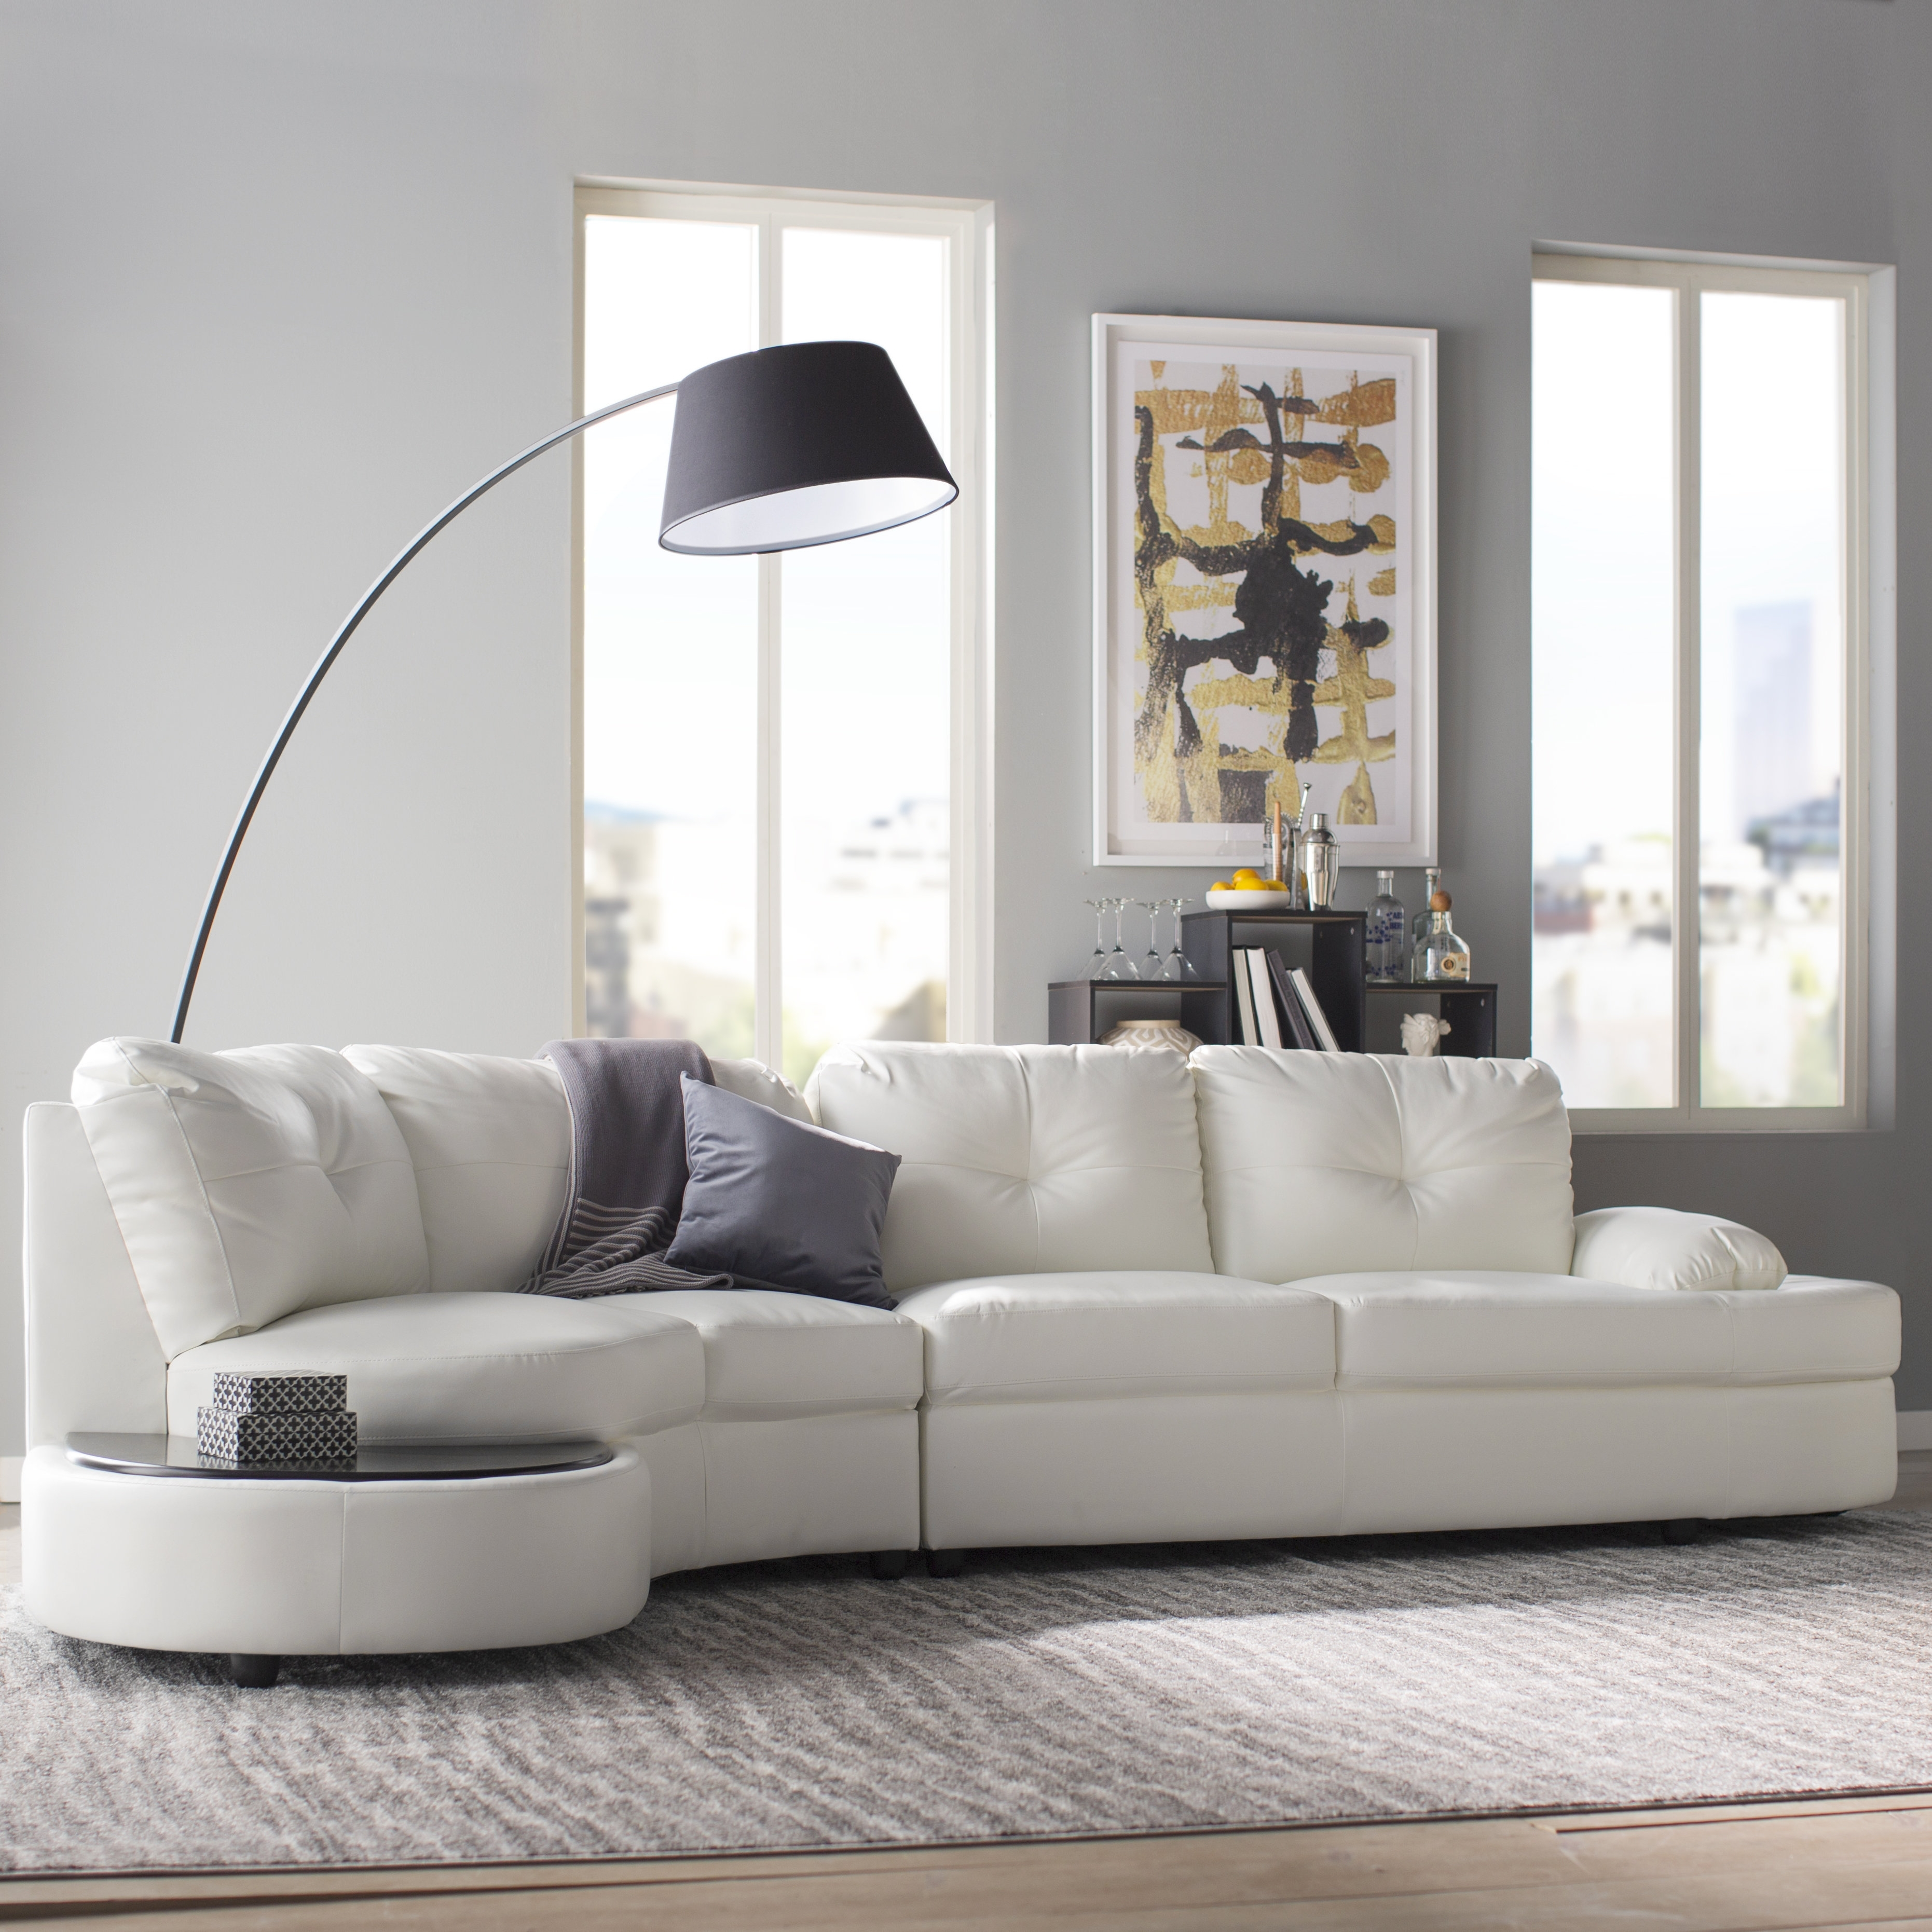 Wade Logan Bireuen Sectional & Reviews | Wayfair Throughout Declan 3 Piece Power Reclining Sectionals With Right Facing Console Loveseat (View 18 of 25)